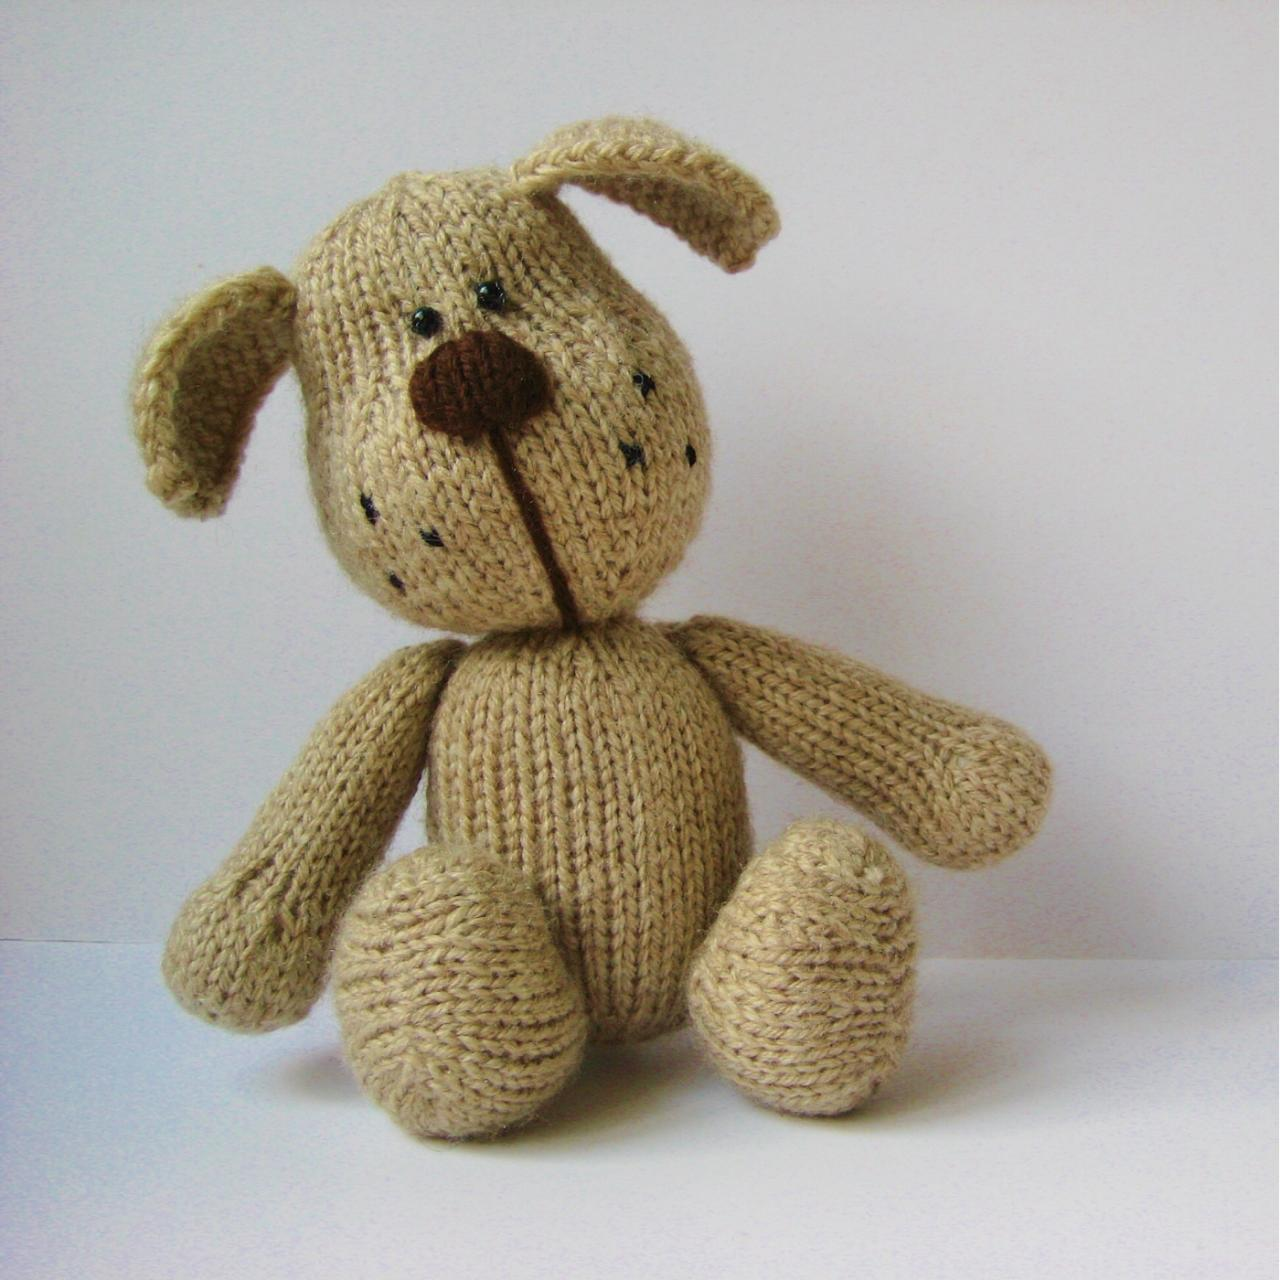 Free Knitting Pattern Toy Puppy : Bernie The Dog Toy Knitting Pattern on Luulla